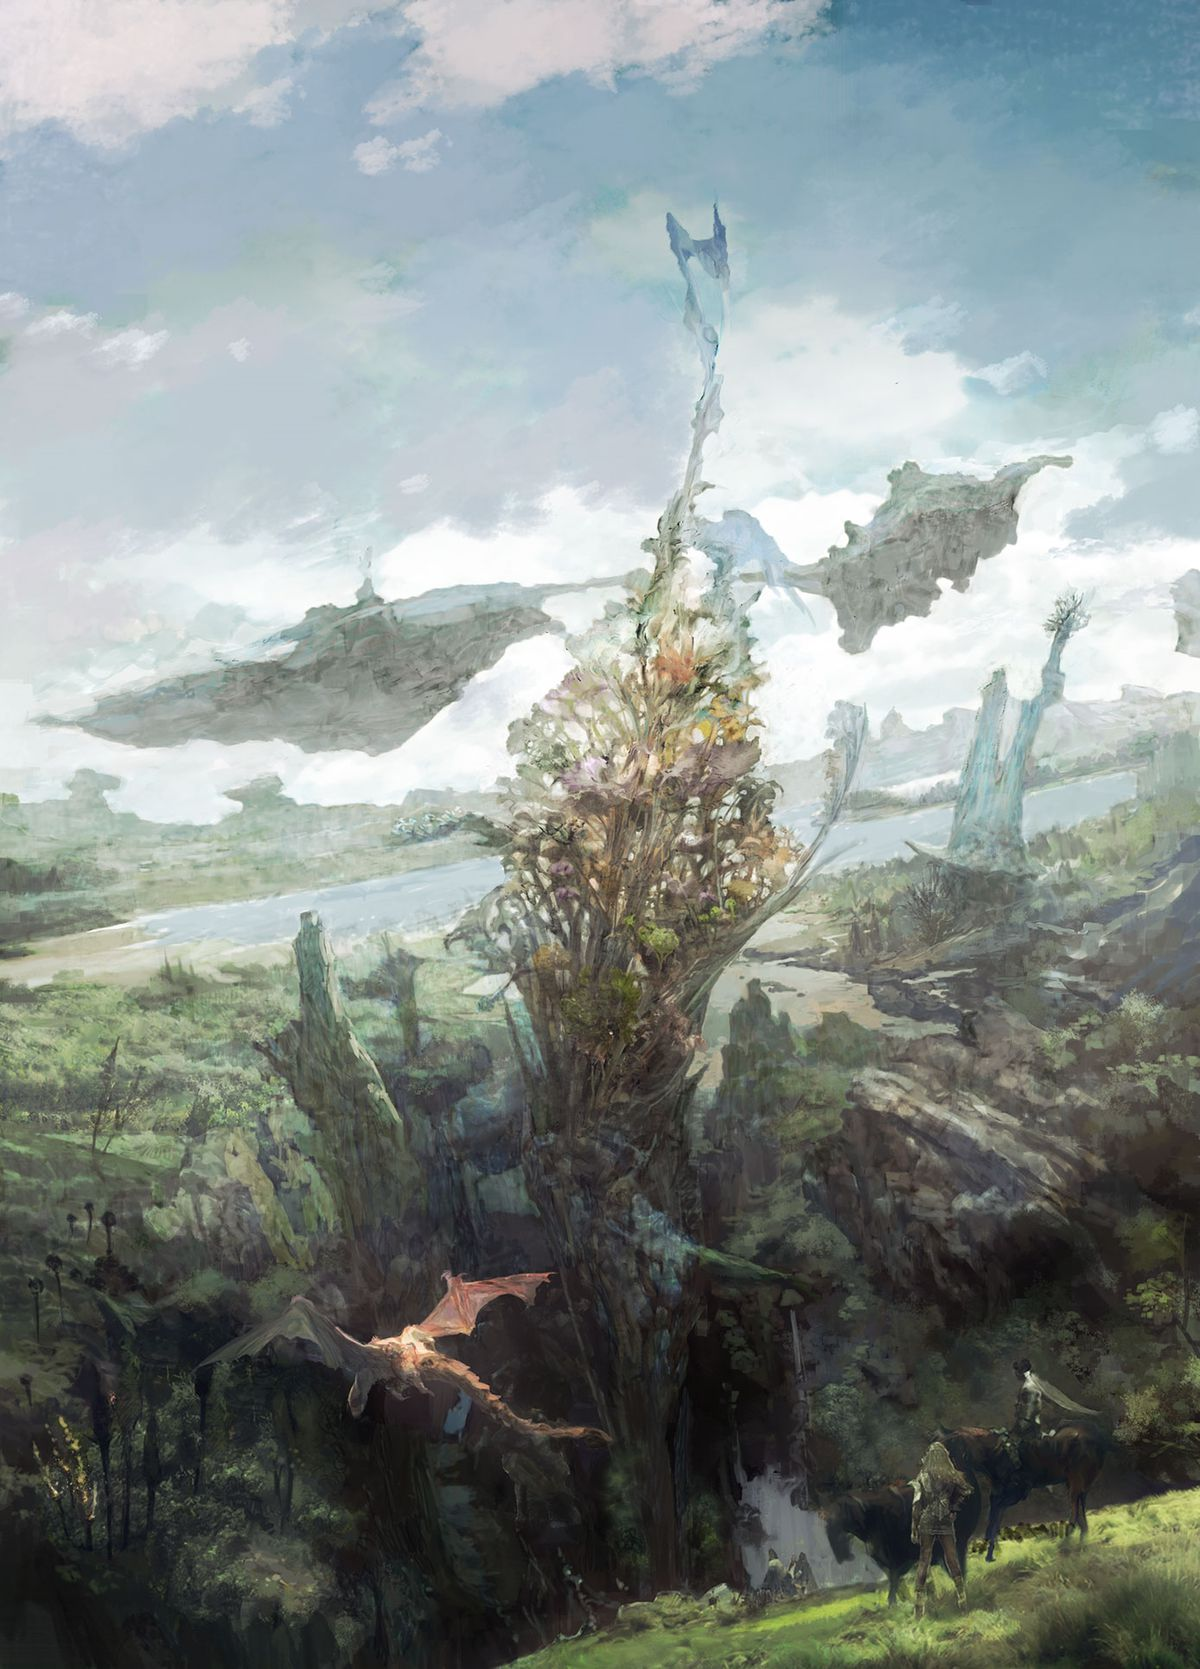 Square Enix says 'Project Prelude Rune' is canceled, and the studio behind it shut down